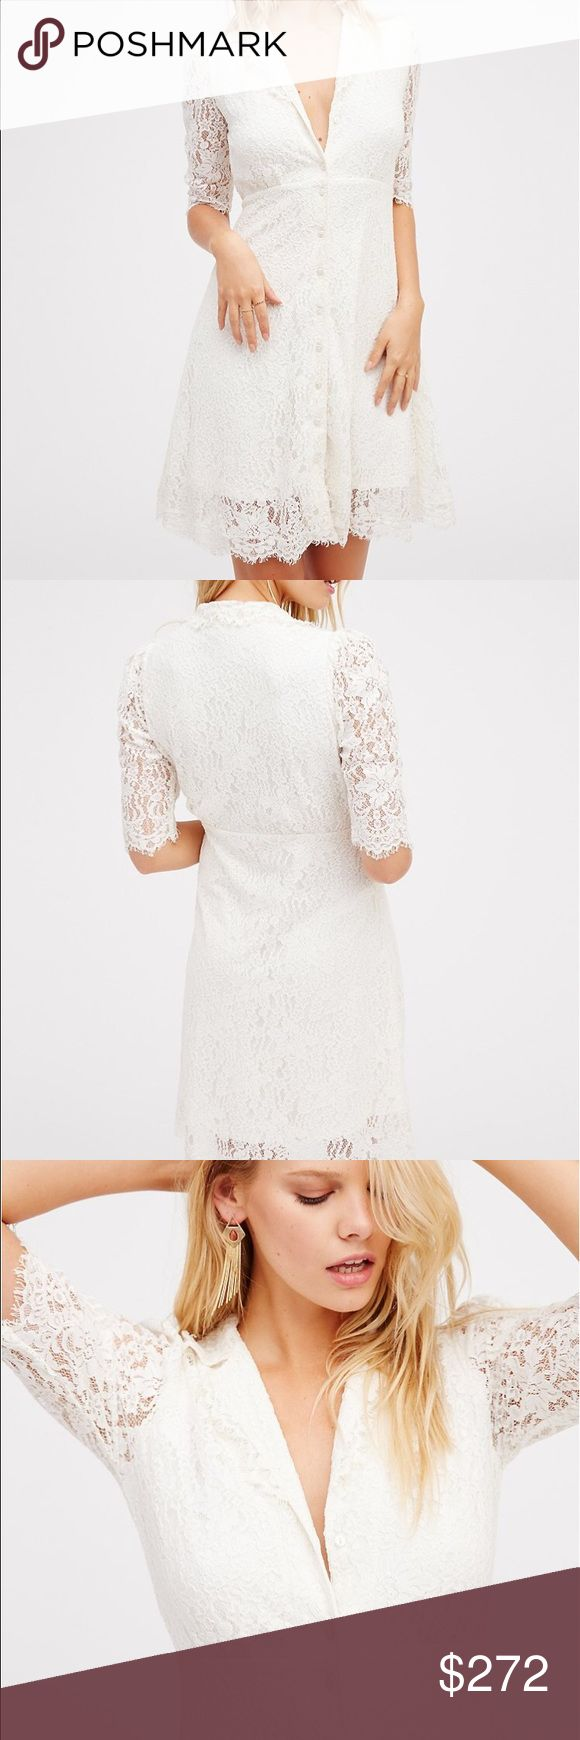 Free People Lace Mini A true vintage look, this darling lace dress features a modest shape with front button closures and sheer quarter length sleeves. Super stretchy lining. Free People Dresses Mini